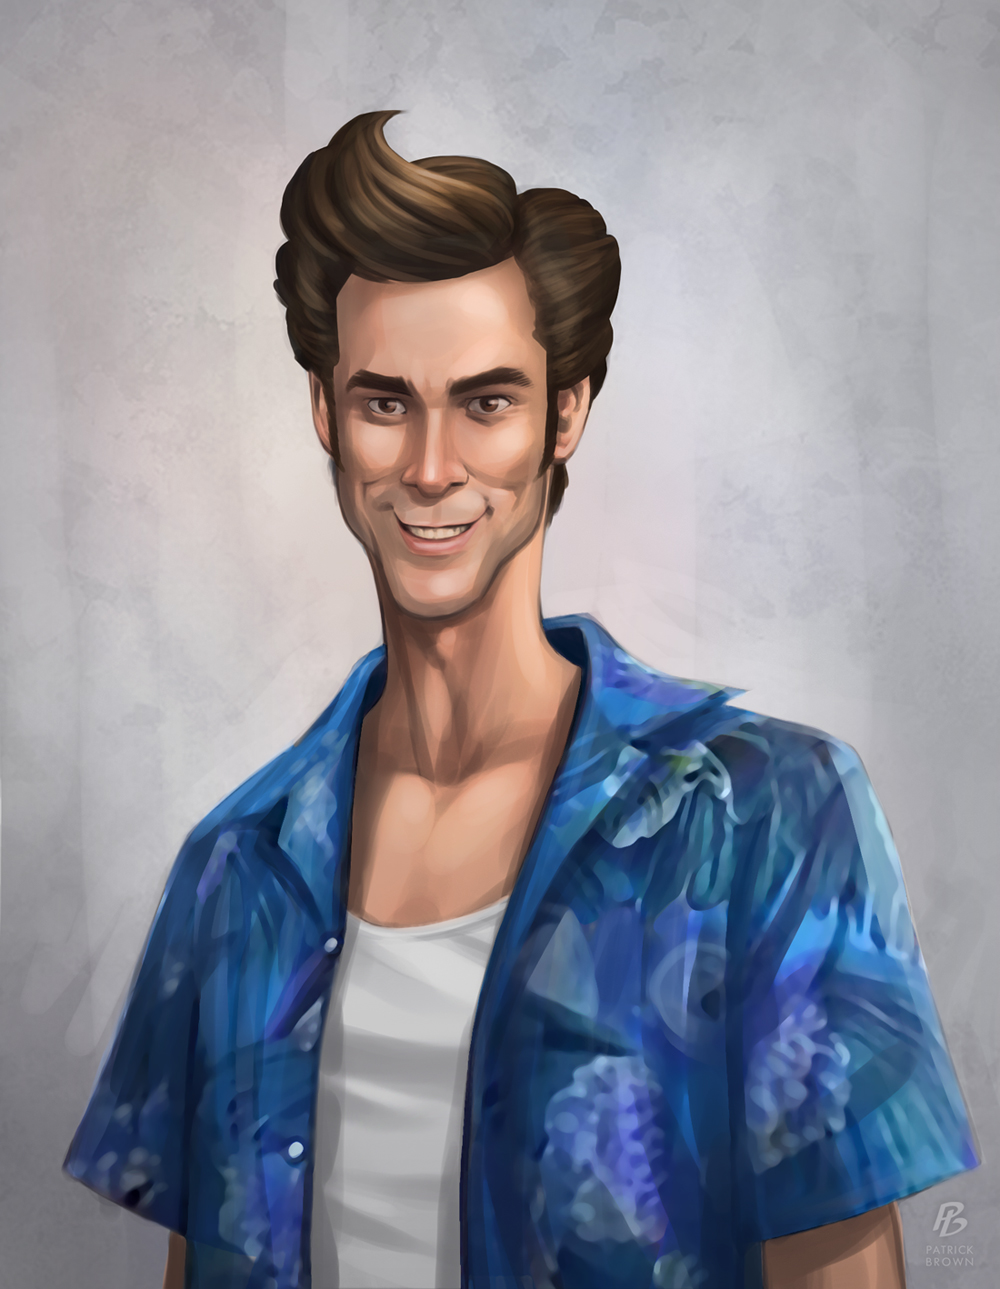 'Ace Ventura' - Patrick Brown